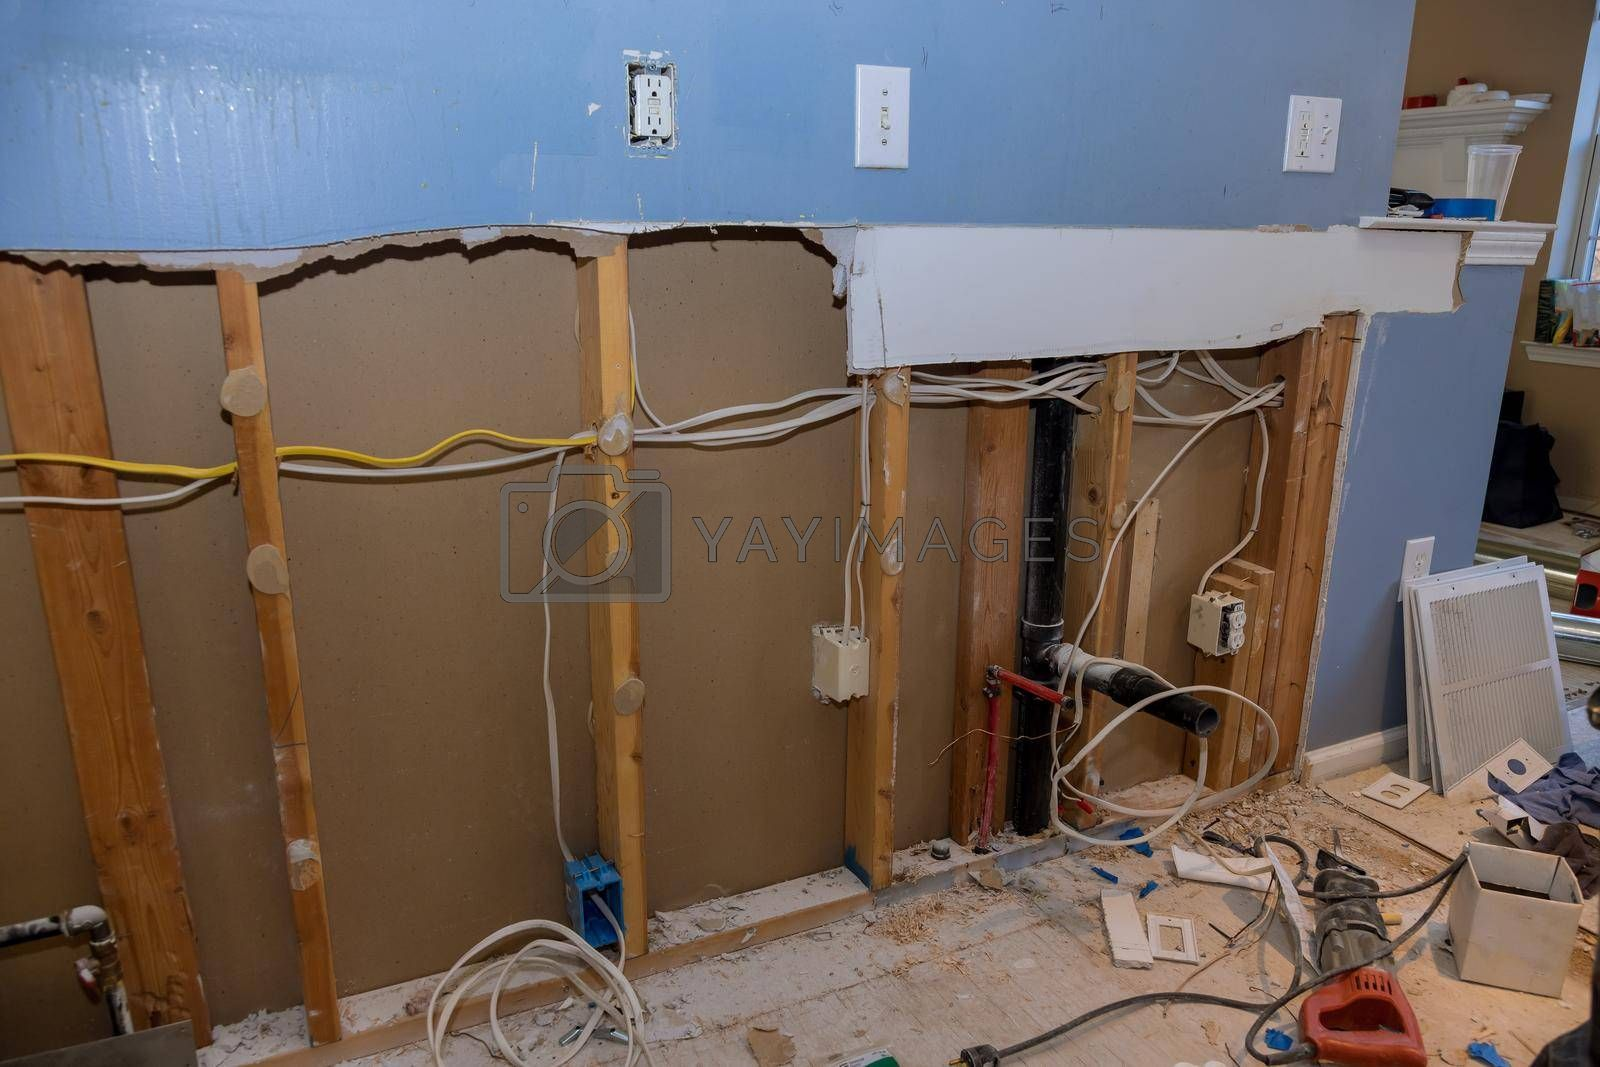 Materials for repairs and tools for remodeling in the kitchen that is under renovation, reconstruction with demolition old drywall